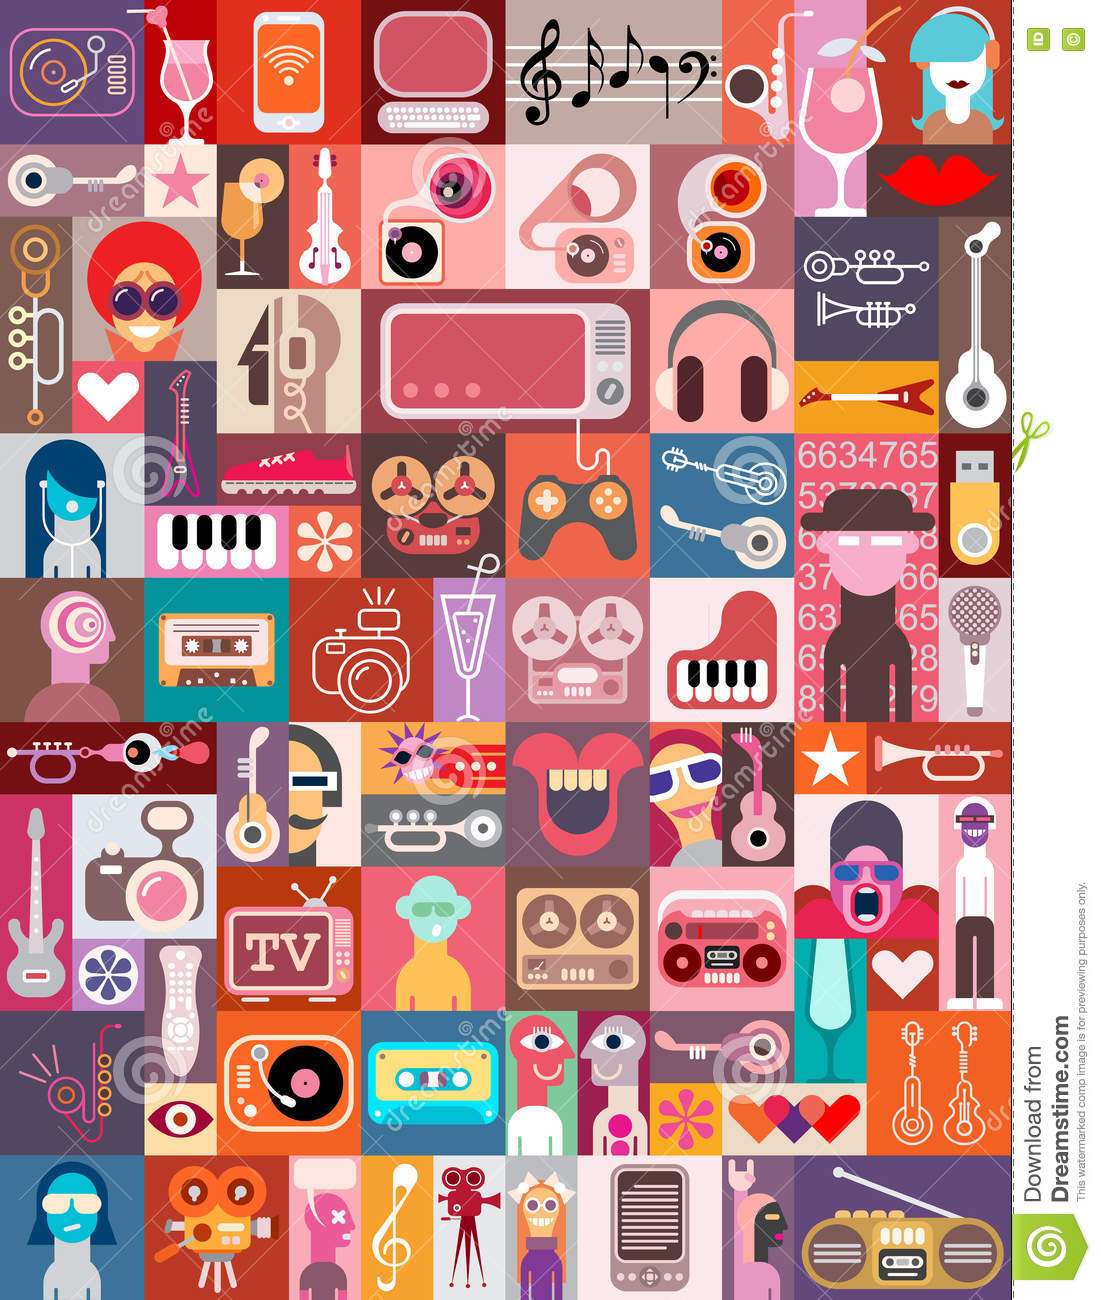 Clip Art Collage stock vector. Illustration of illustration.